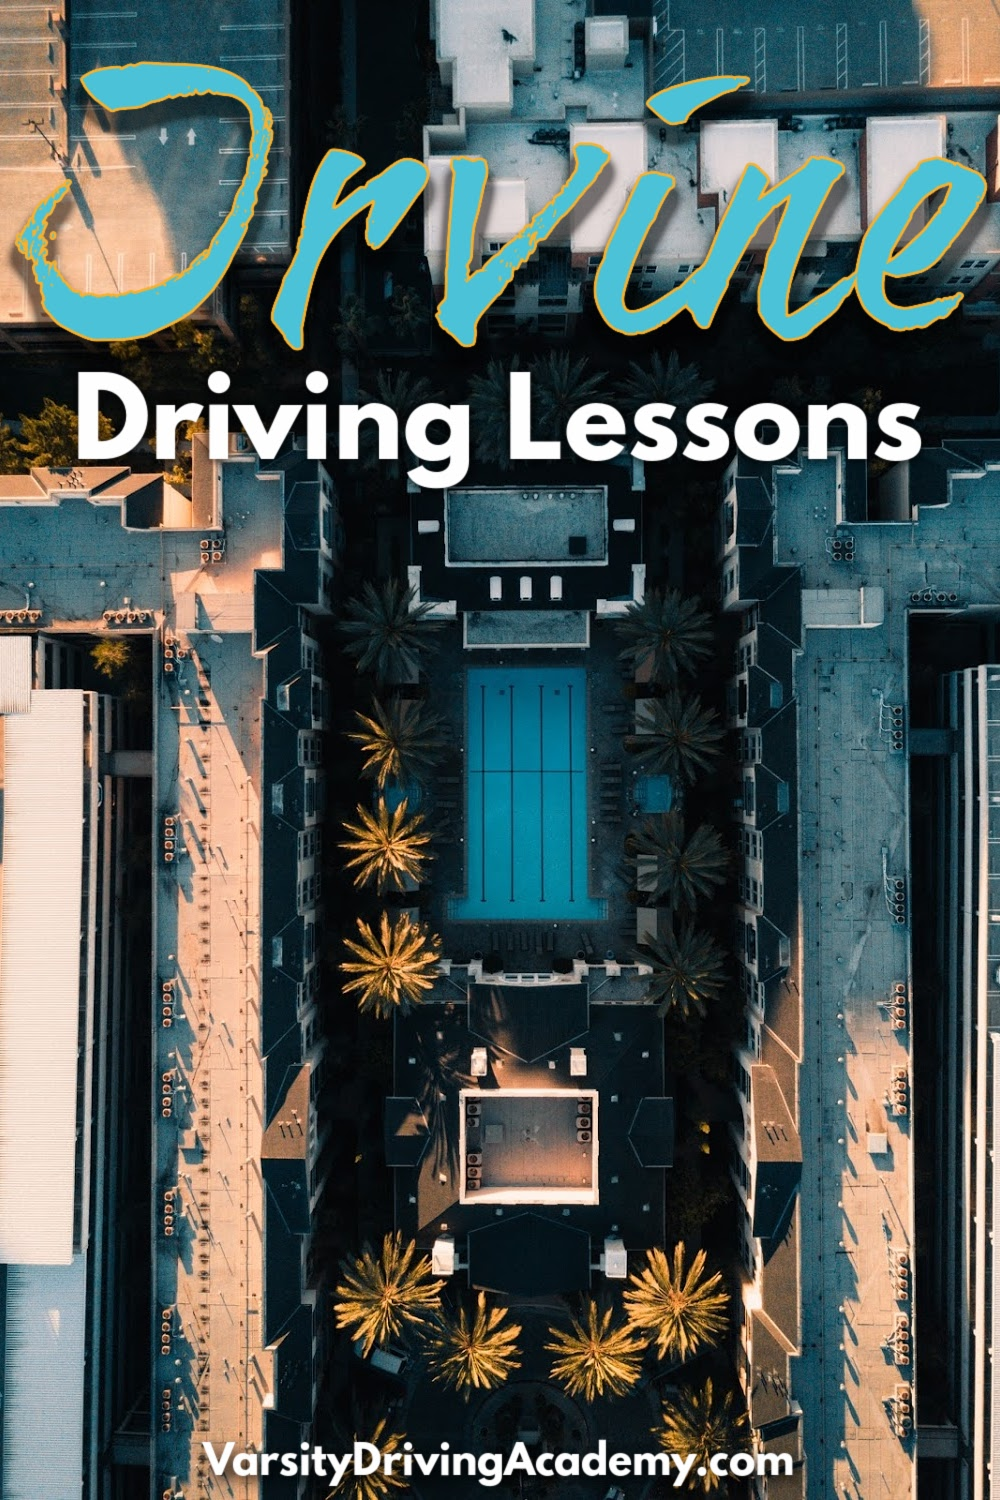 You can learn how to drive in Irvine with the best Irvine driving lessons at Varsity Driving Academy with online driving lessons and more.